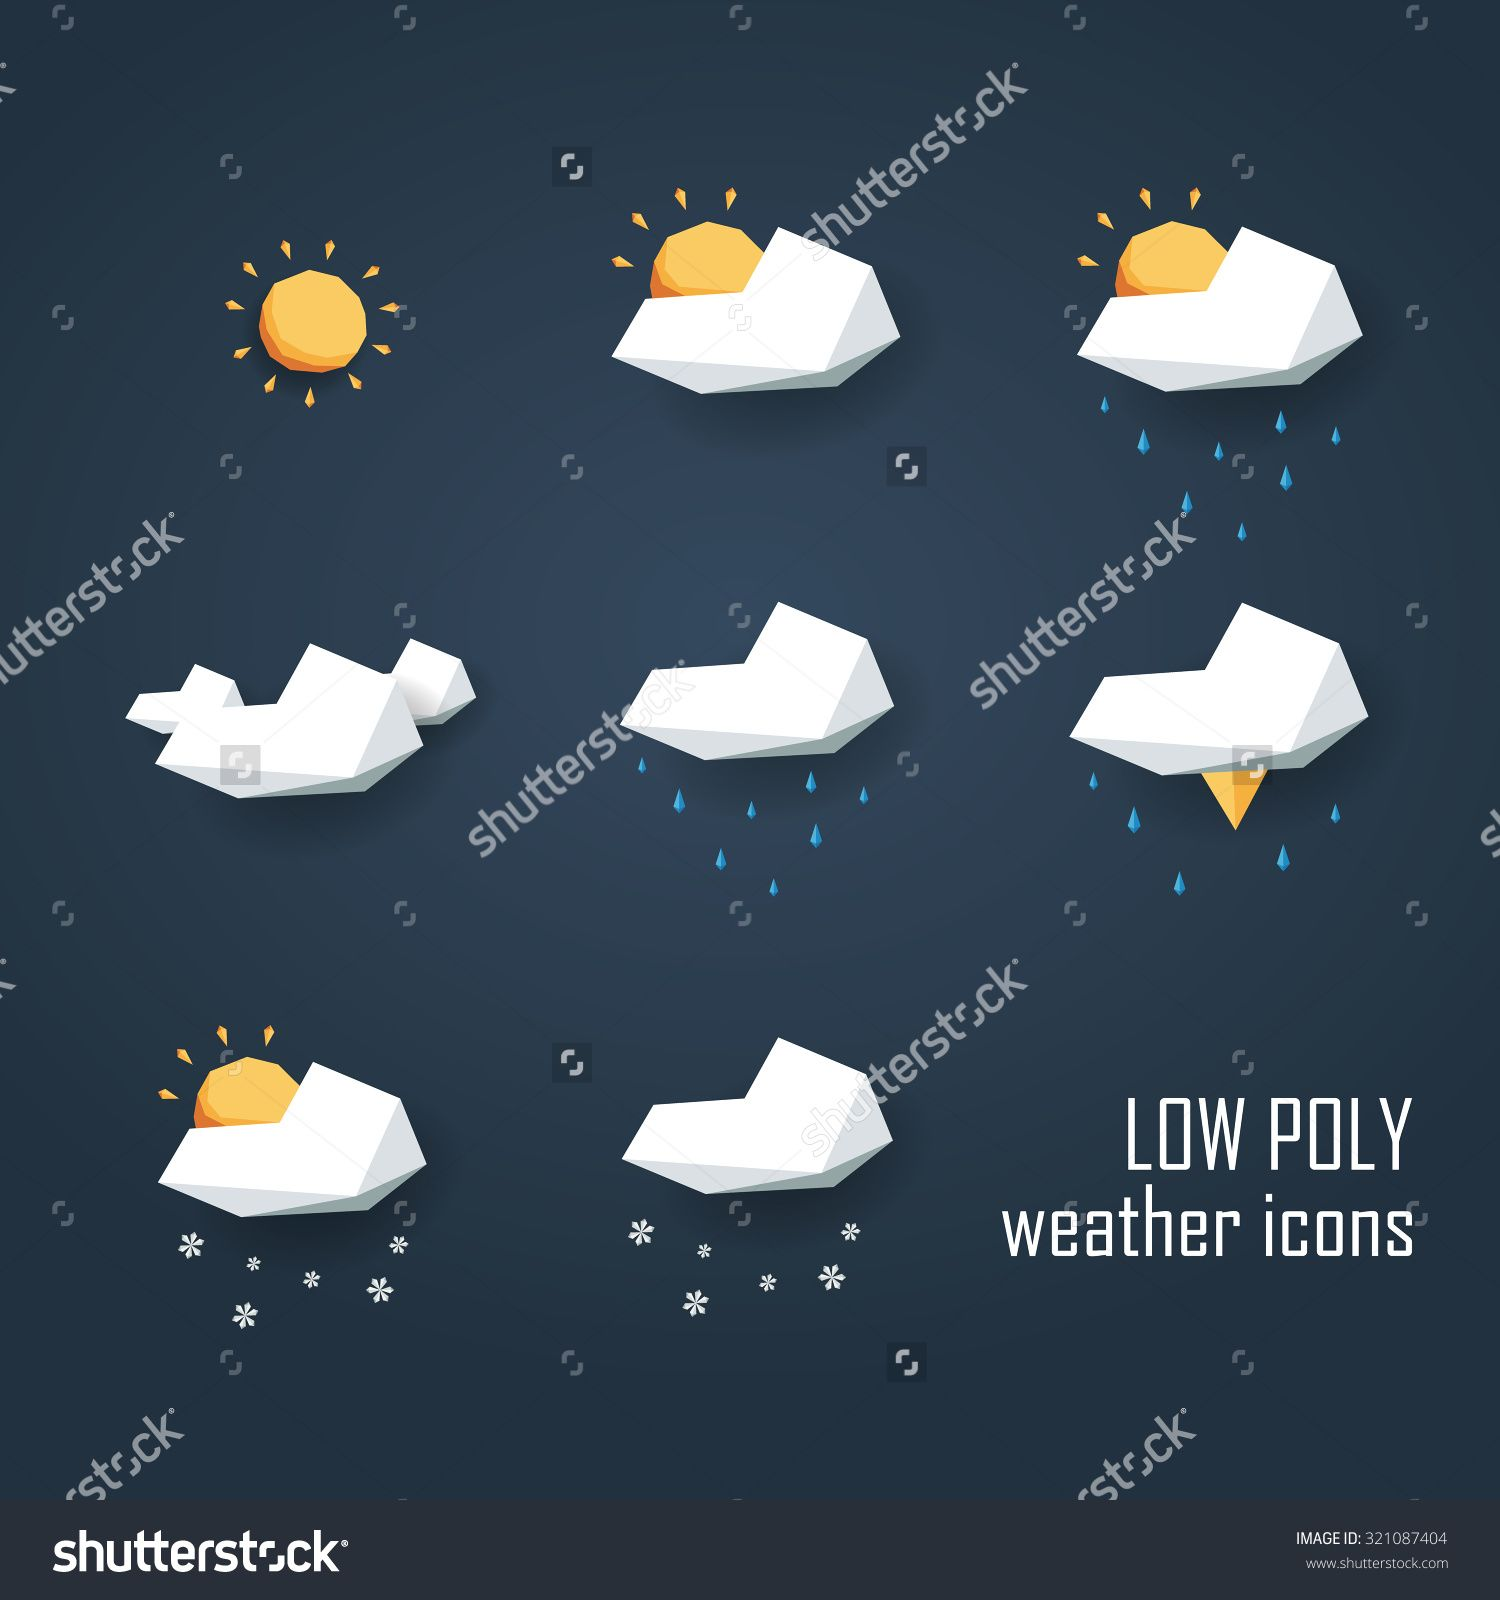 Stock Images Similar To Id 166010426 Winter Cloud With Snowflakes In Weather Icons Low Poly Weather